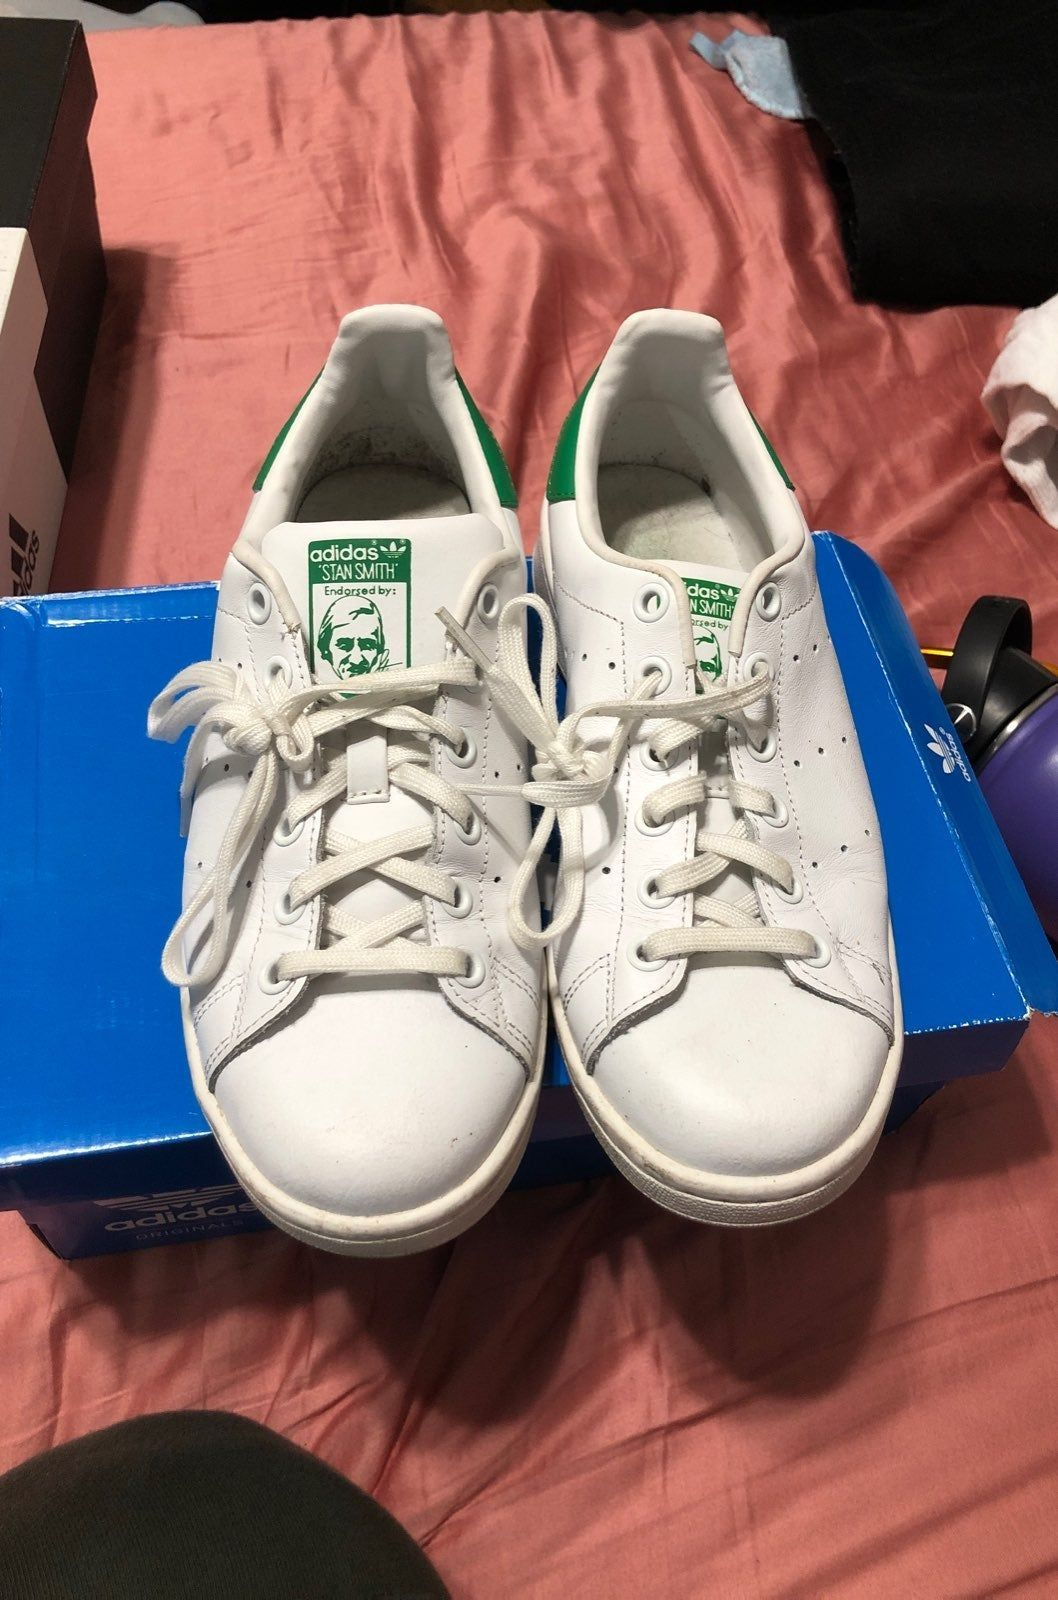 Brand New never been worn Adidas size 6 Grey Tumblr shoes   eBay